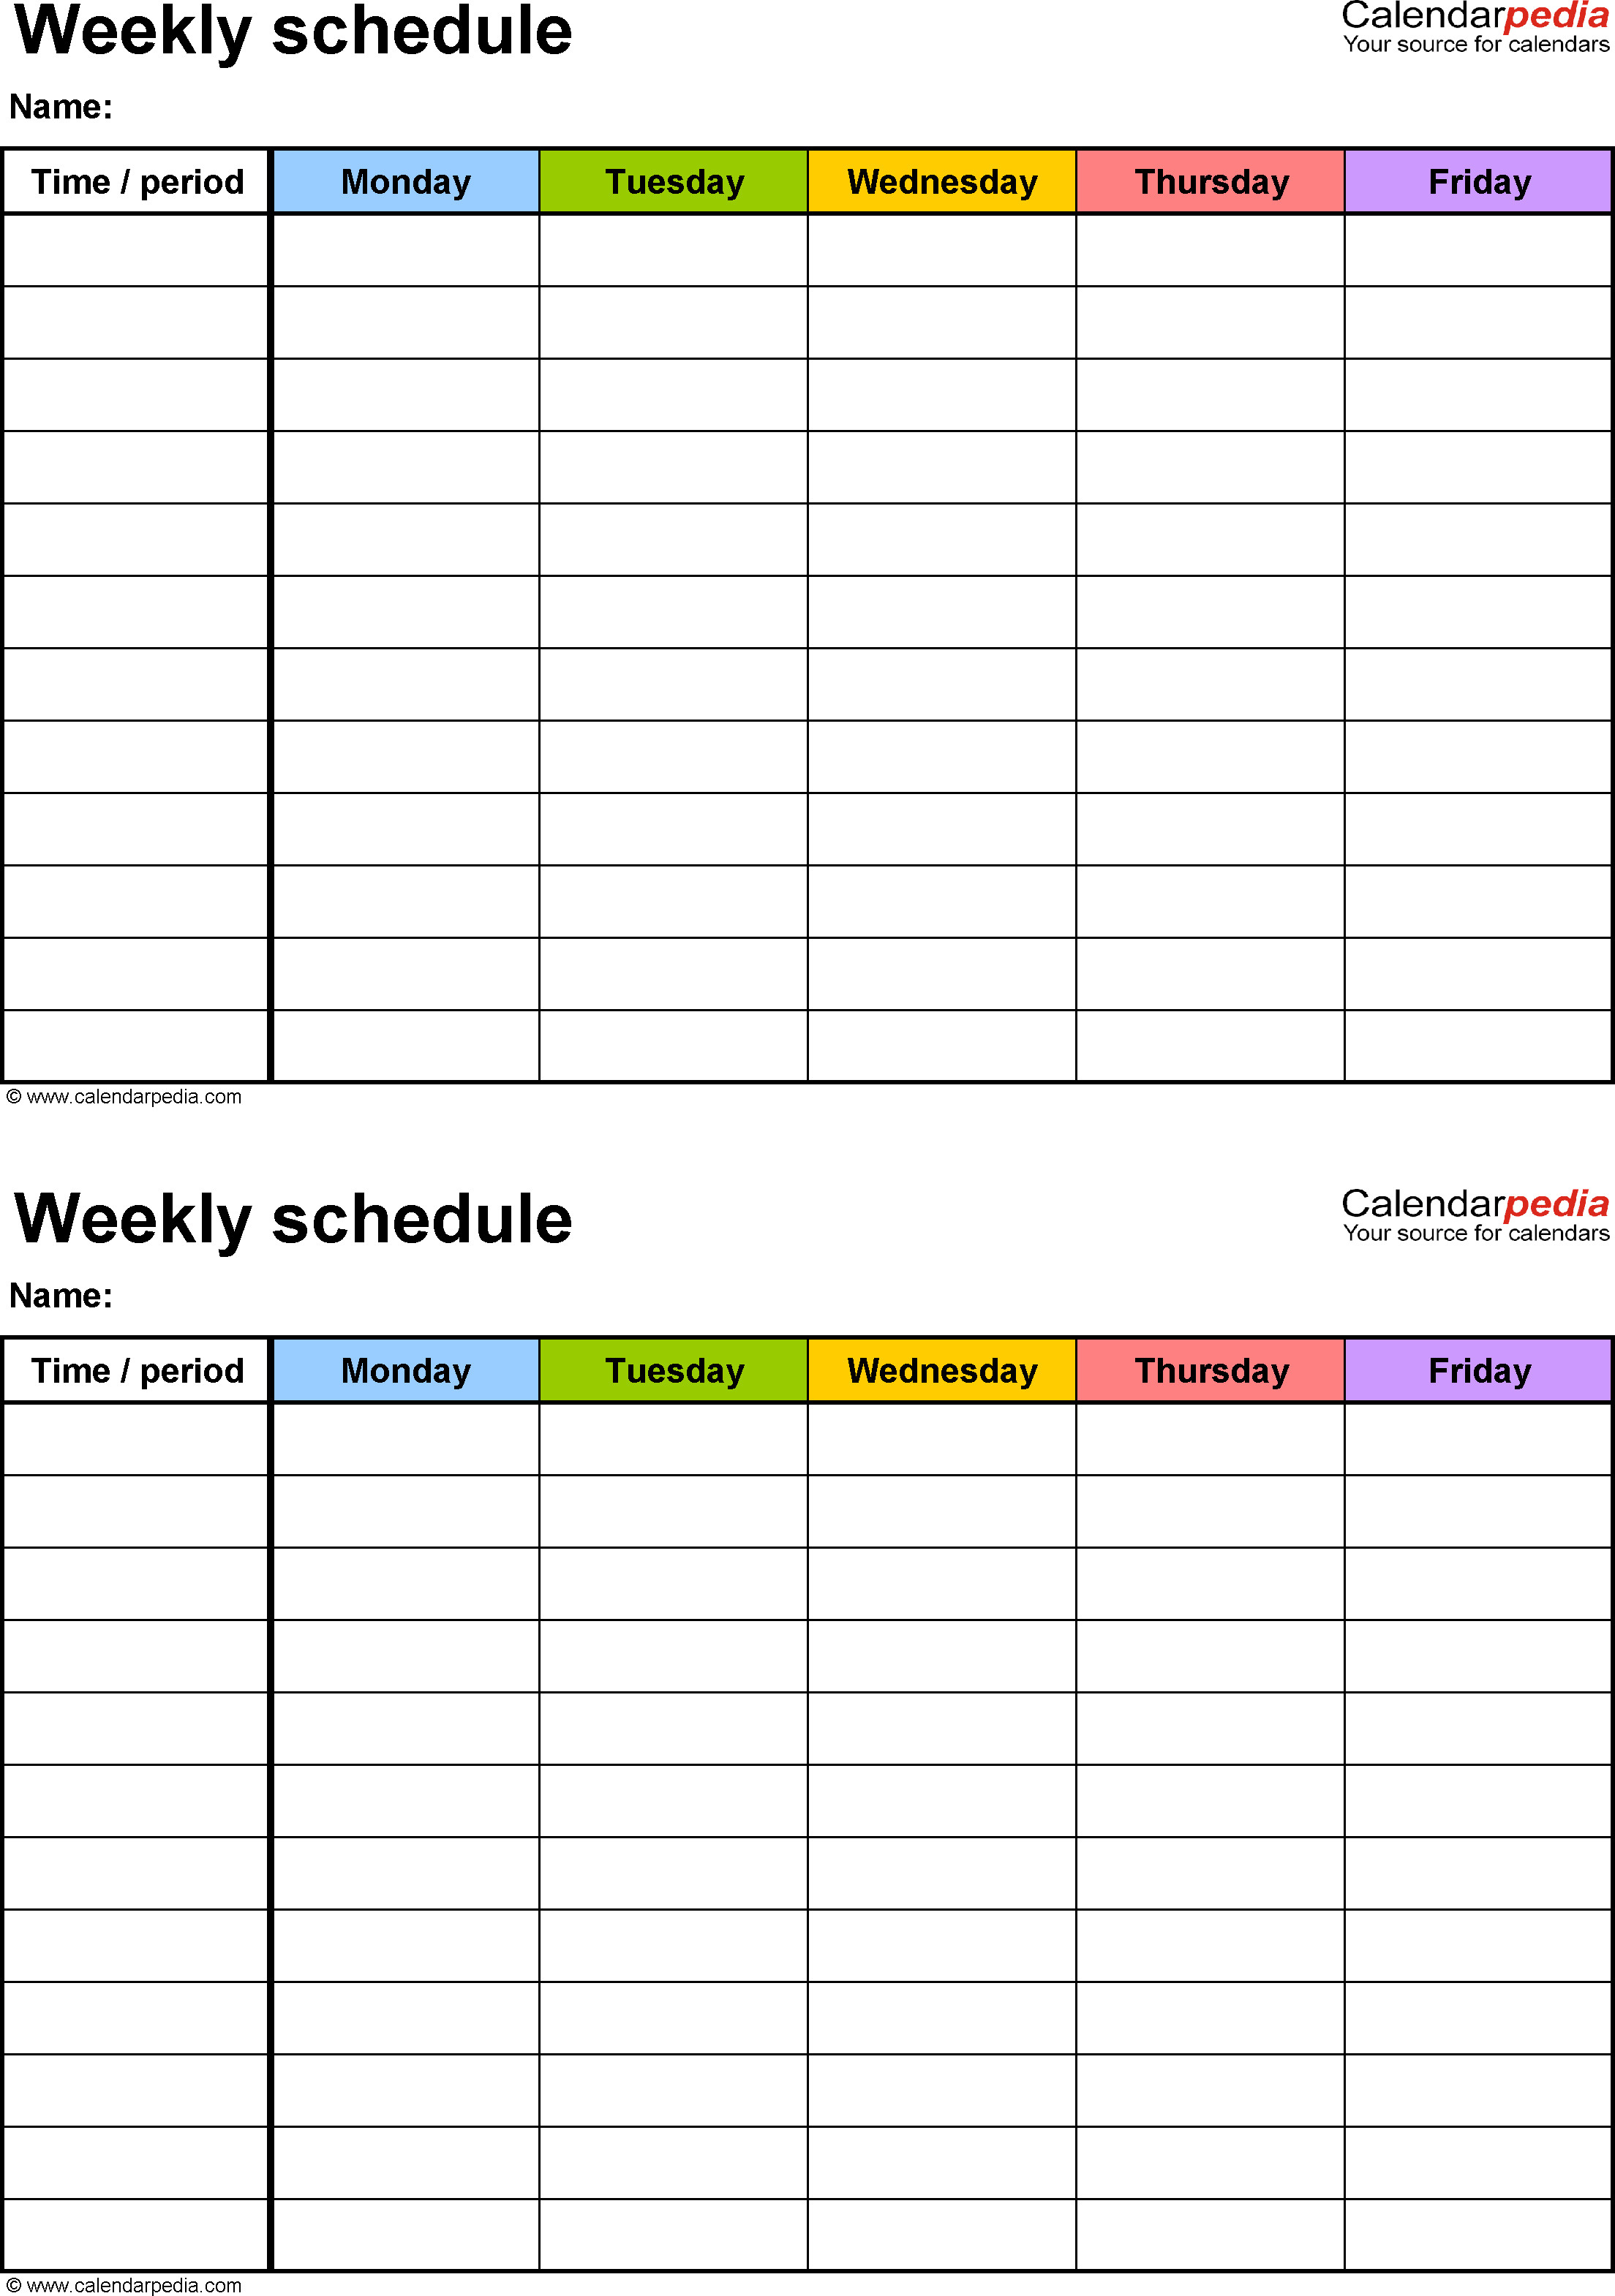 Weekly School Planner Template Weekly Schedule Template for Excel Version 3 2 Schedules